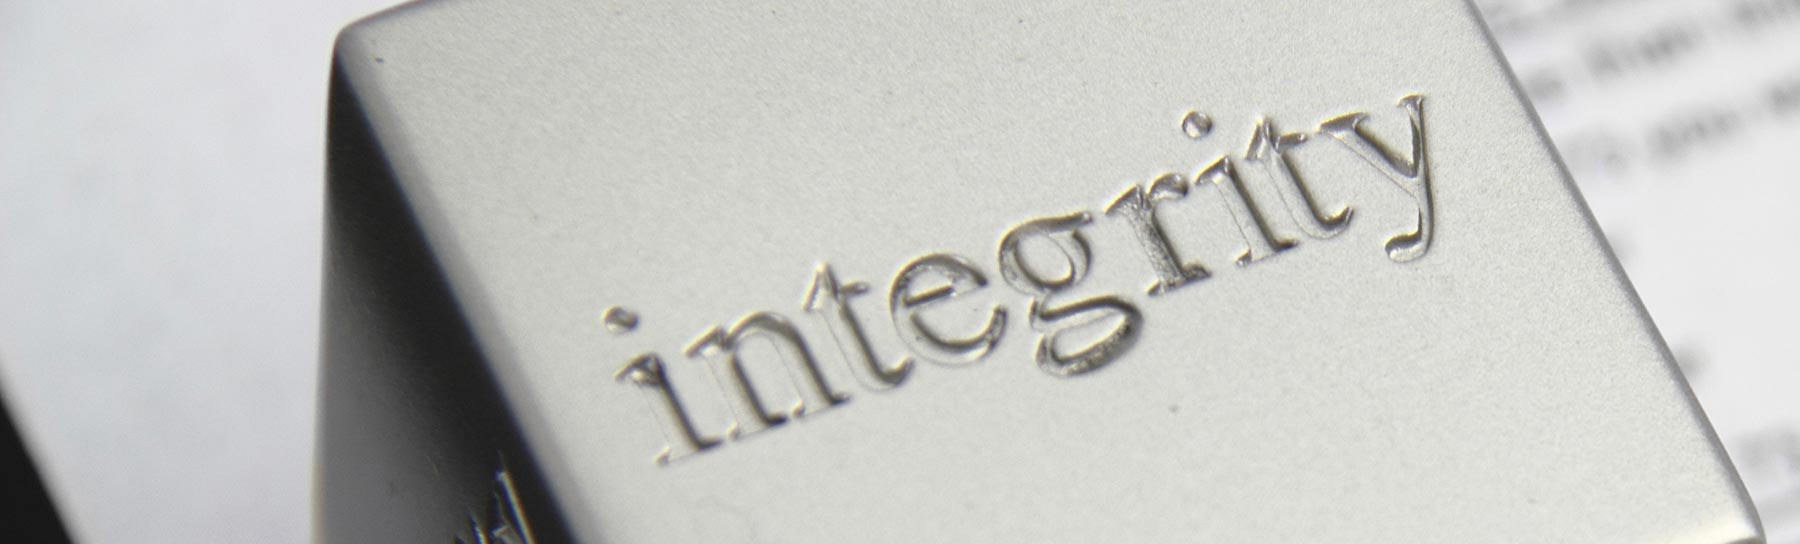 Integrity Management